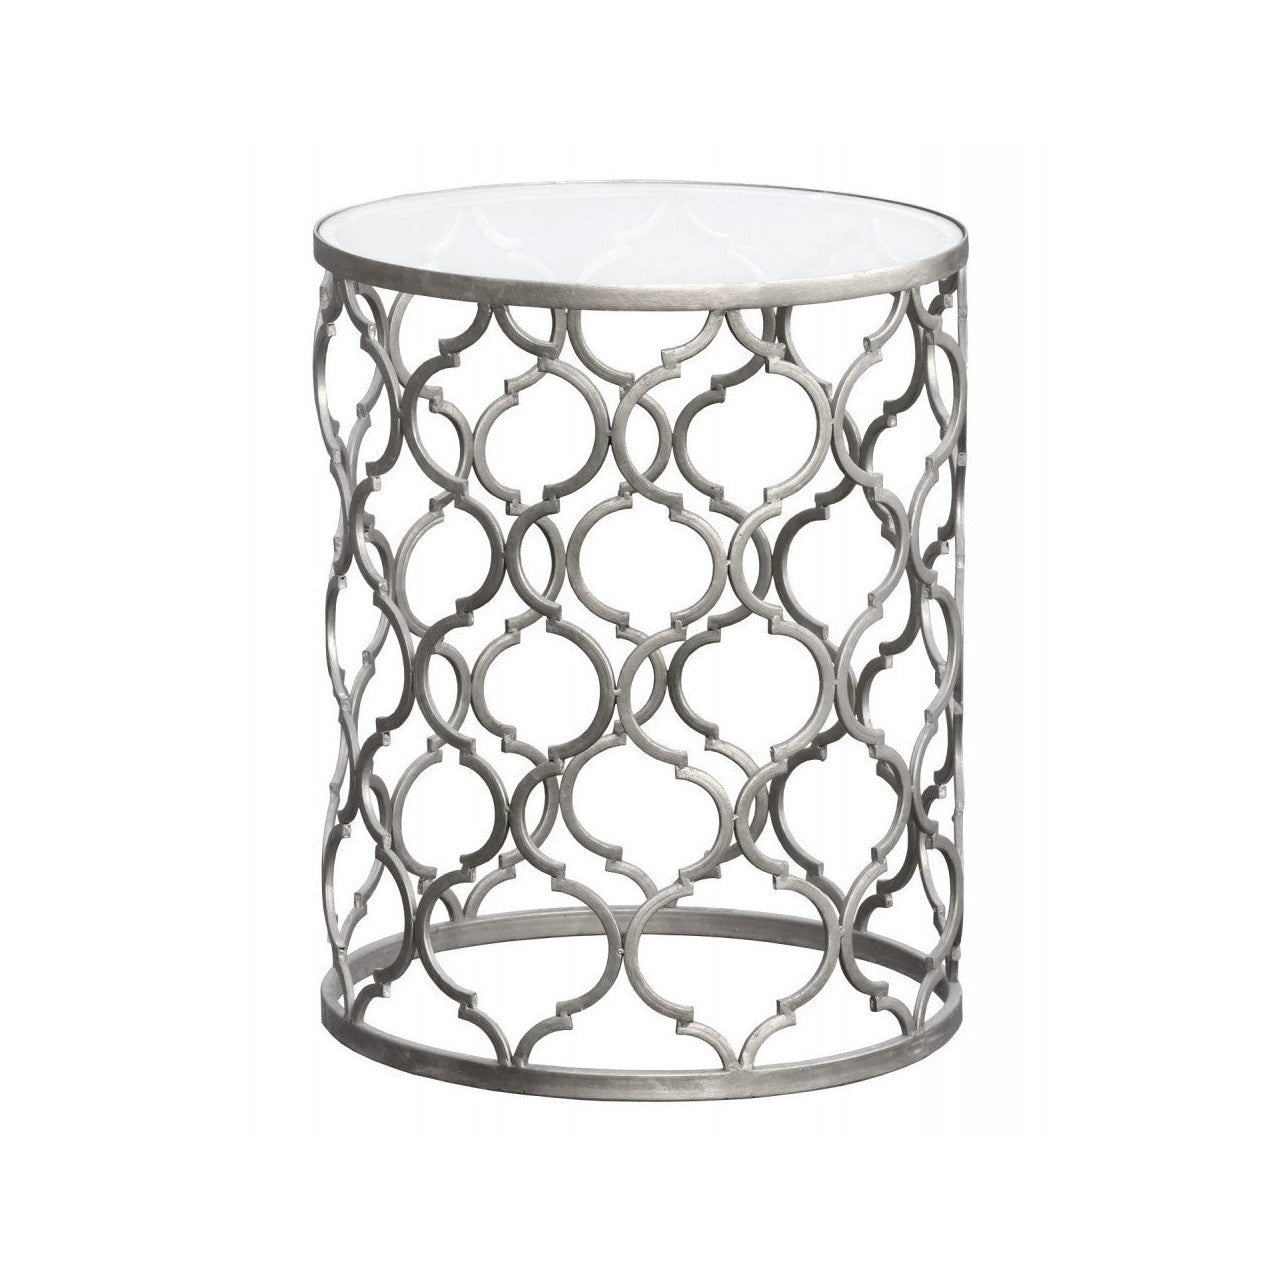 new product 4586b 641b4 Gin Shu Parisienne Round Metal Side Table Silver